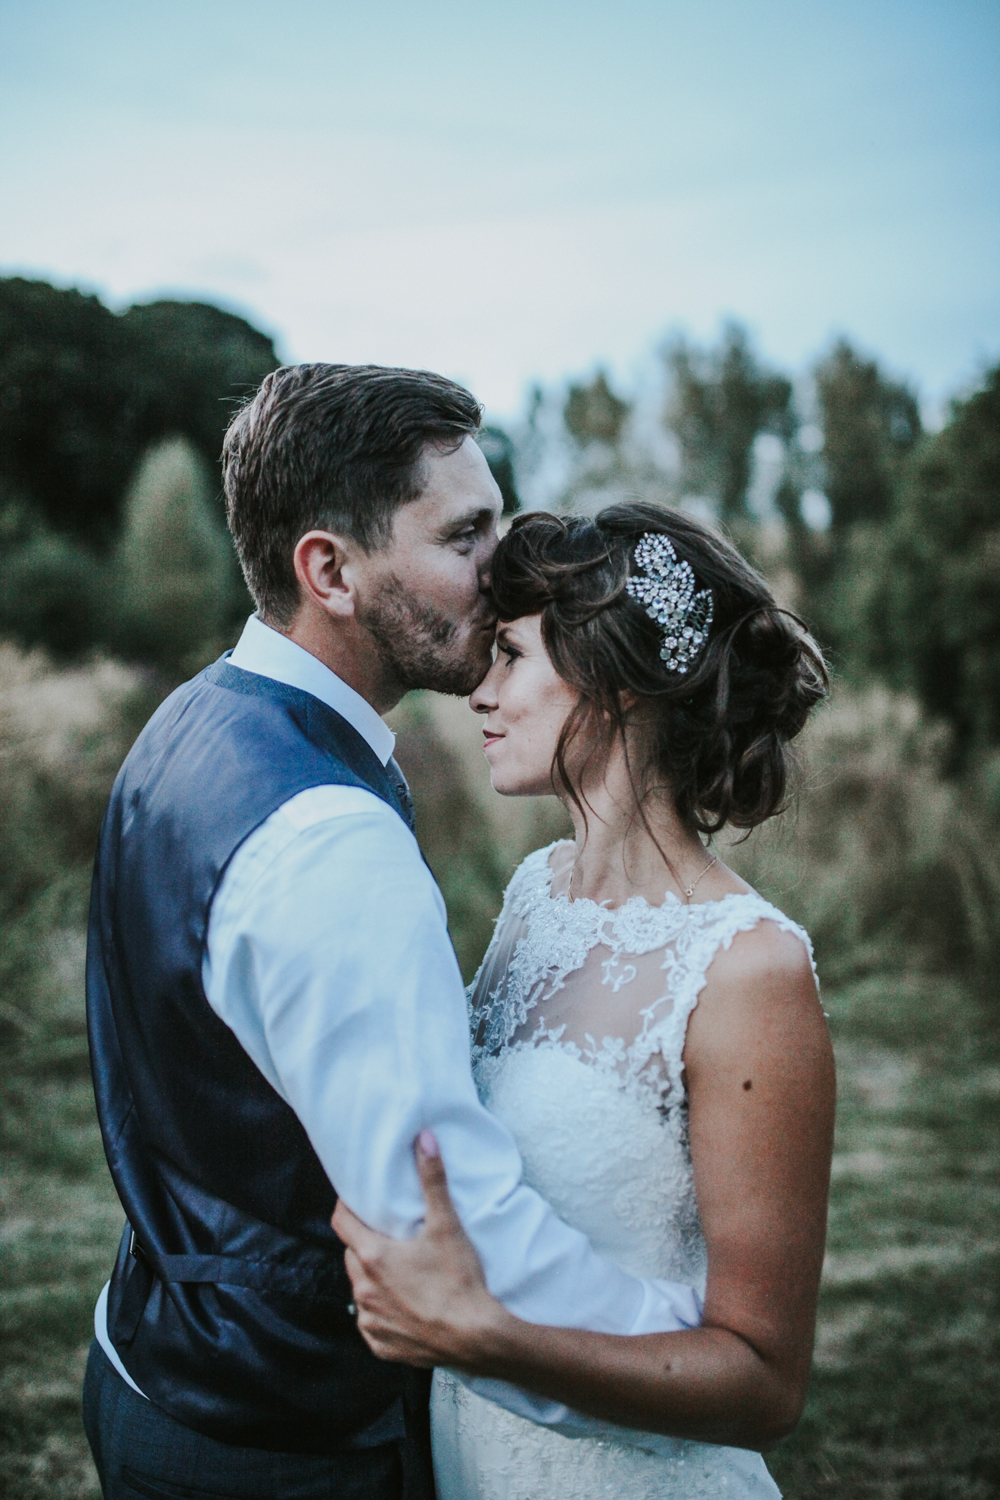 Kate-Aaron-Wedding-Kent-Photography-Photographer-Devon-Norfolk-Darina-Stoda-410.jpg